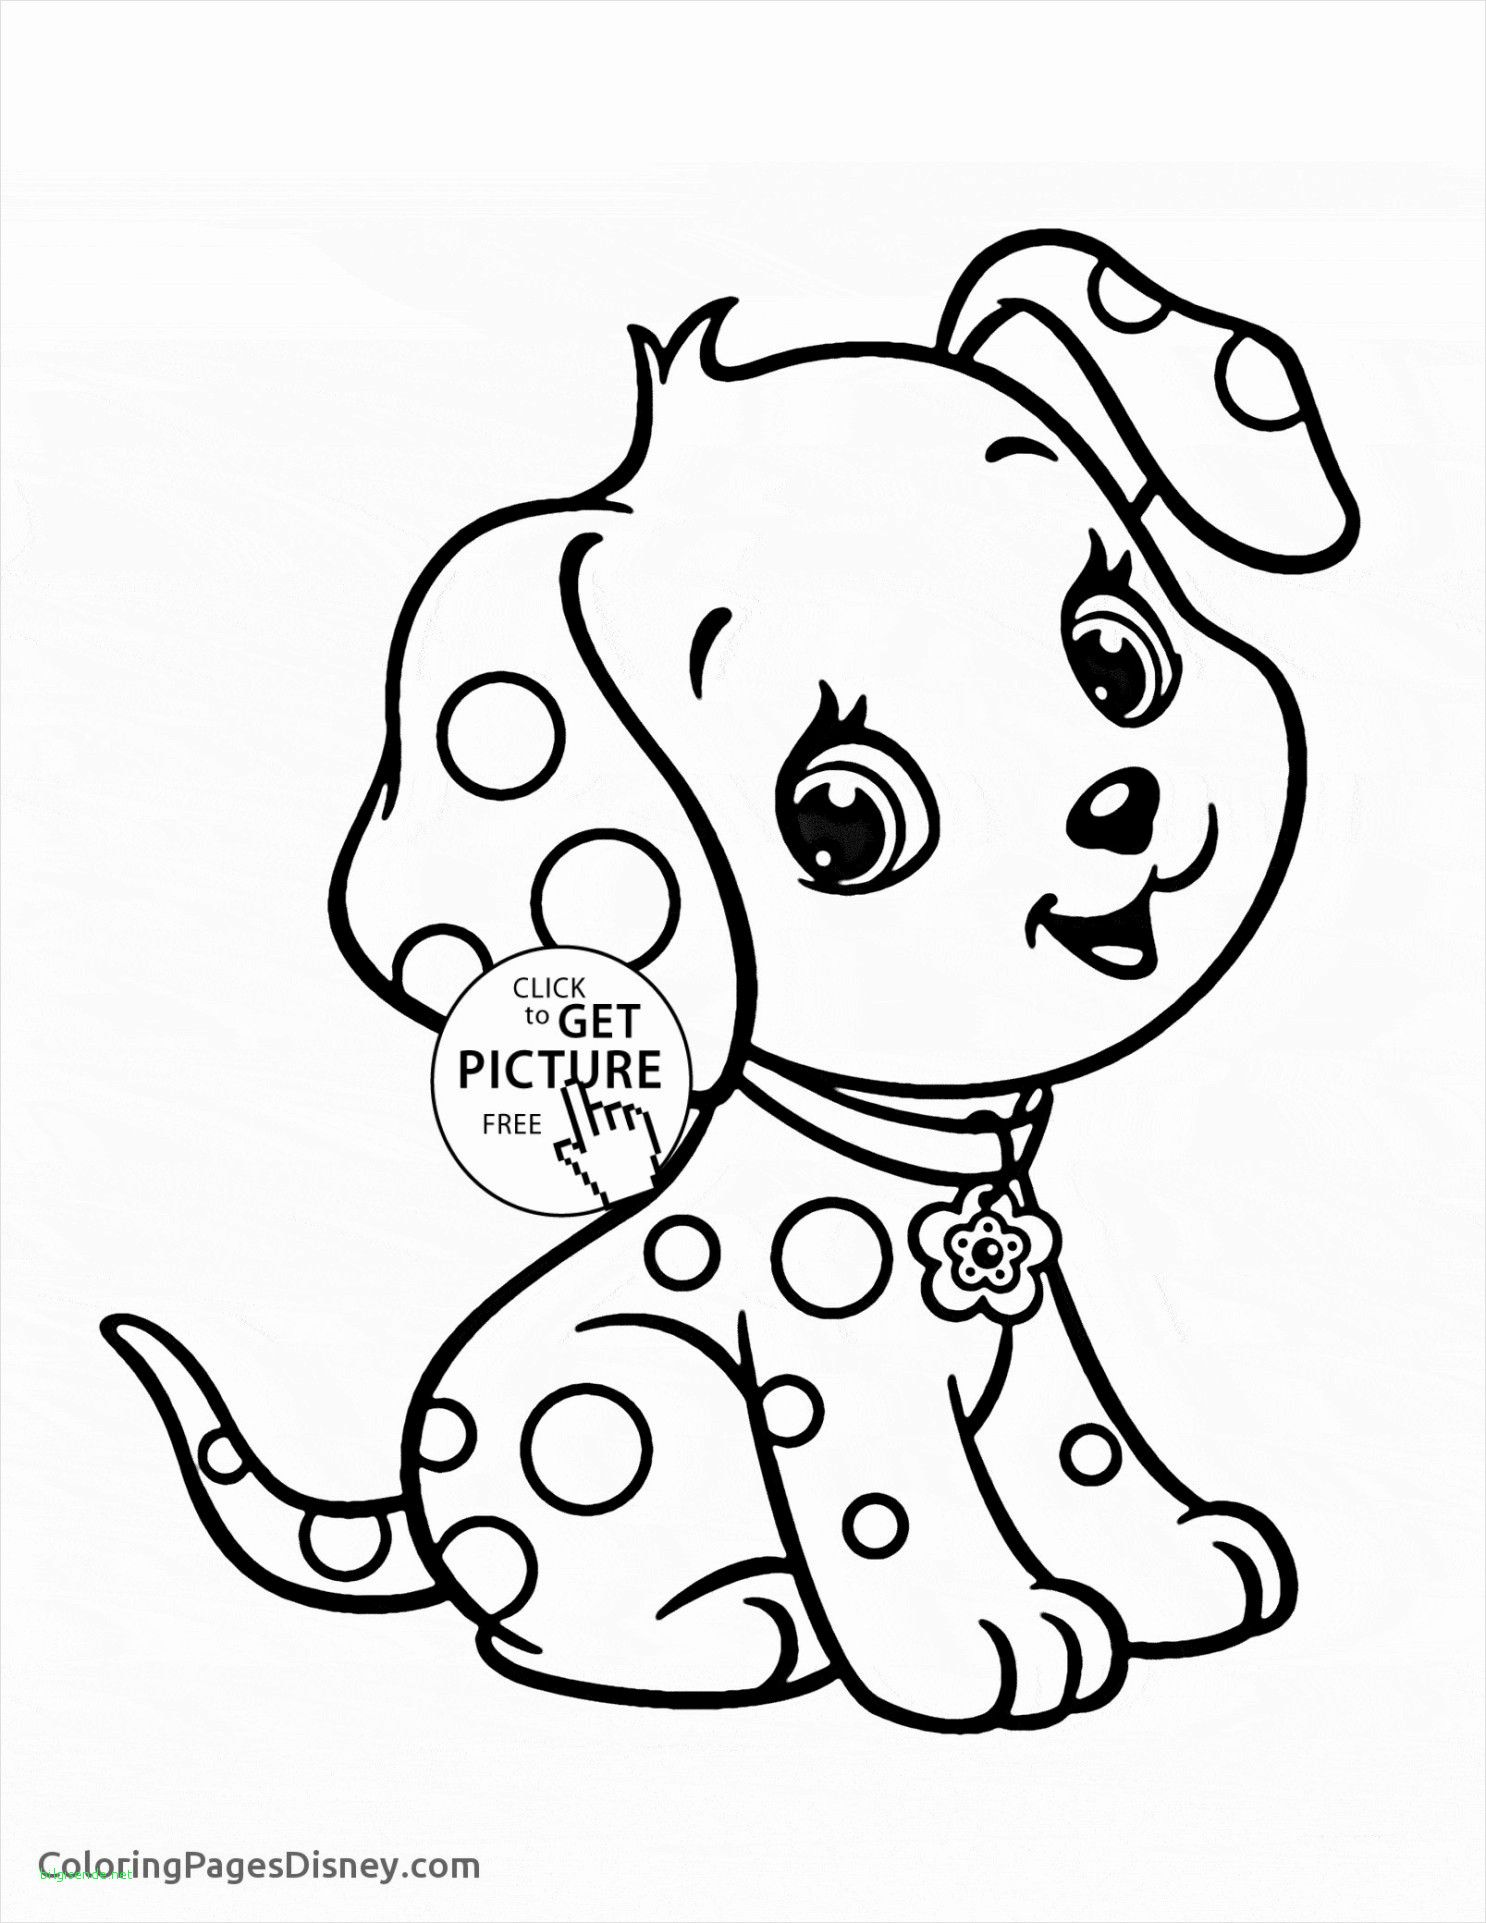 Curious Pet Coloring Pages In Free Download Printable Curious Pet Coloring Pages Puppy Coloring Pages Dog Coloring Page Cute Coloring Pages